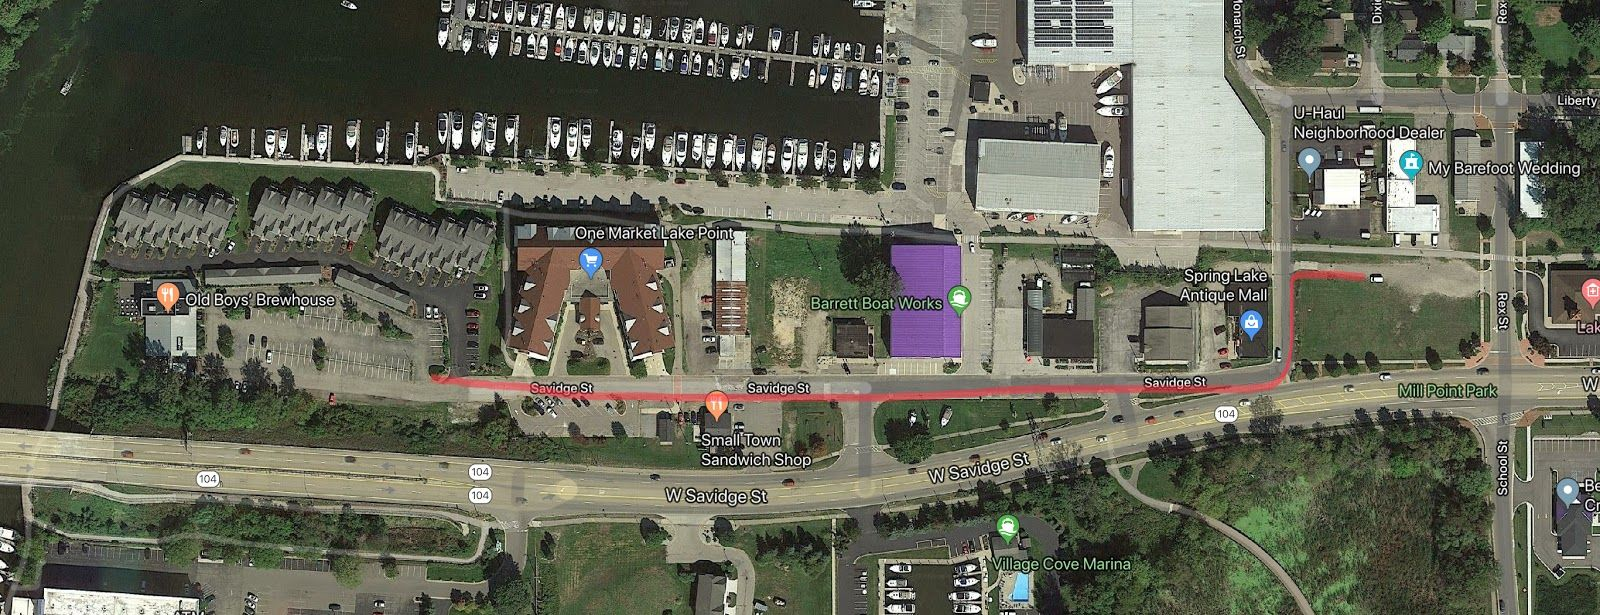 Mill Point Health Center Parking Map